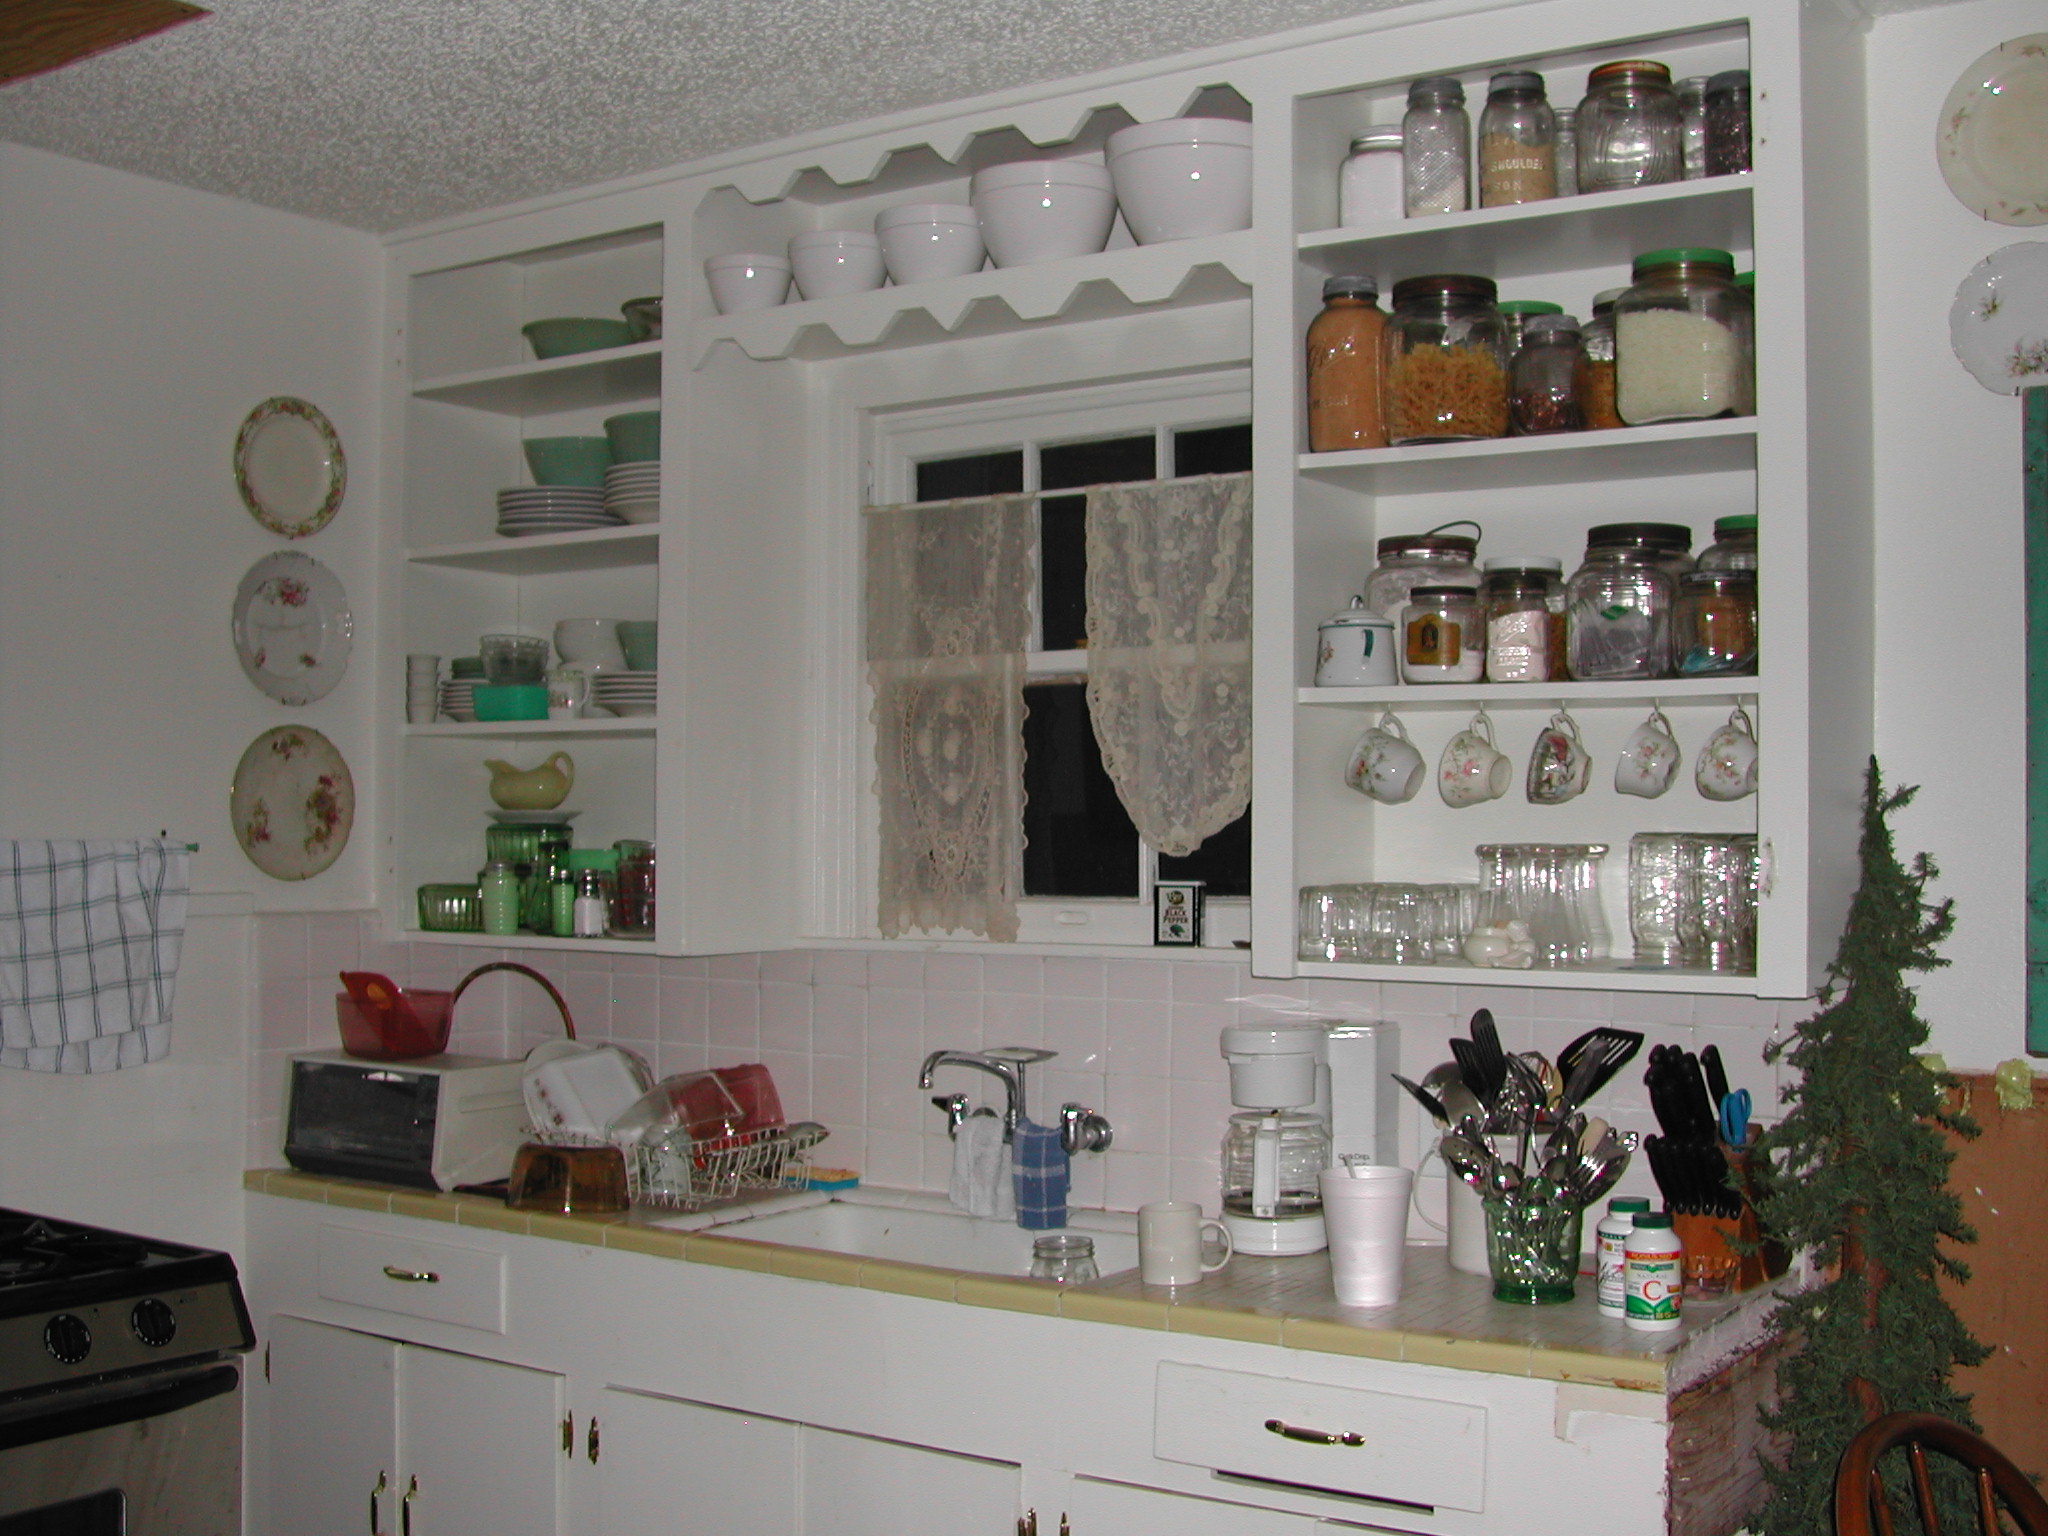 Ruth Avenue kitchen - before